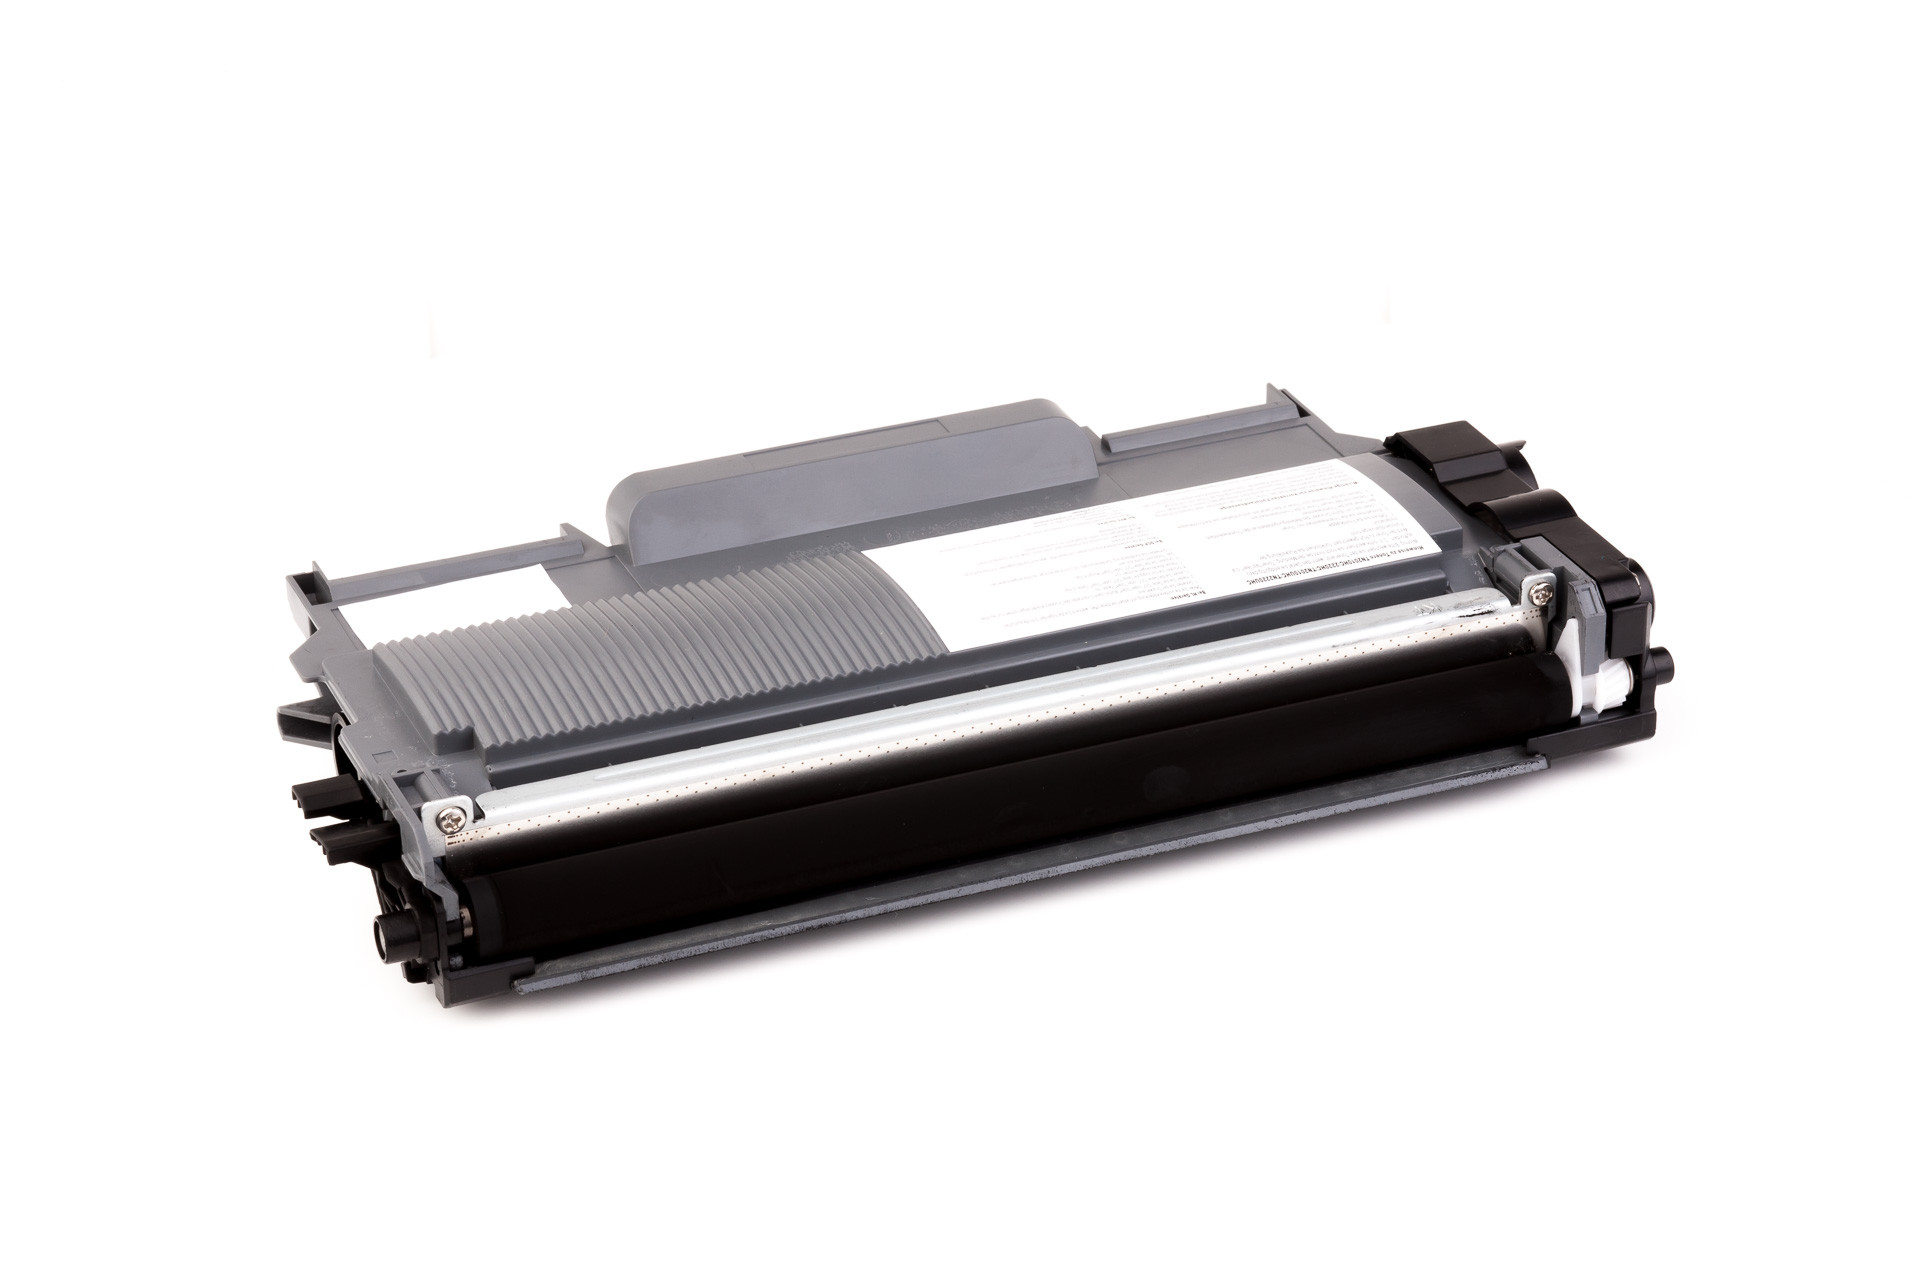 Toner cartridge (alternative) compatible with Brother HL-2240/2240D/2250/2250DN/2270/2270DW/DCP-7060/7060D/7065/7065DN/7070/7070DW //  TN2220 / TN 2220